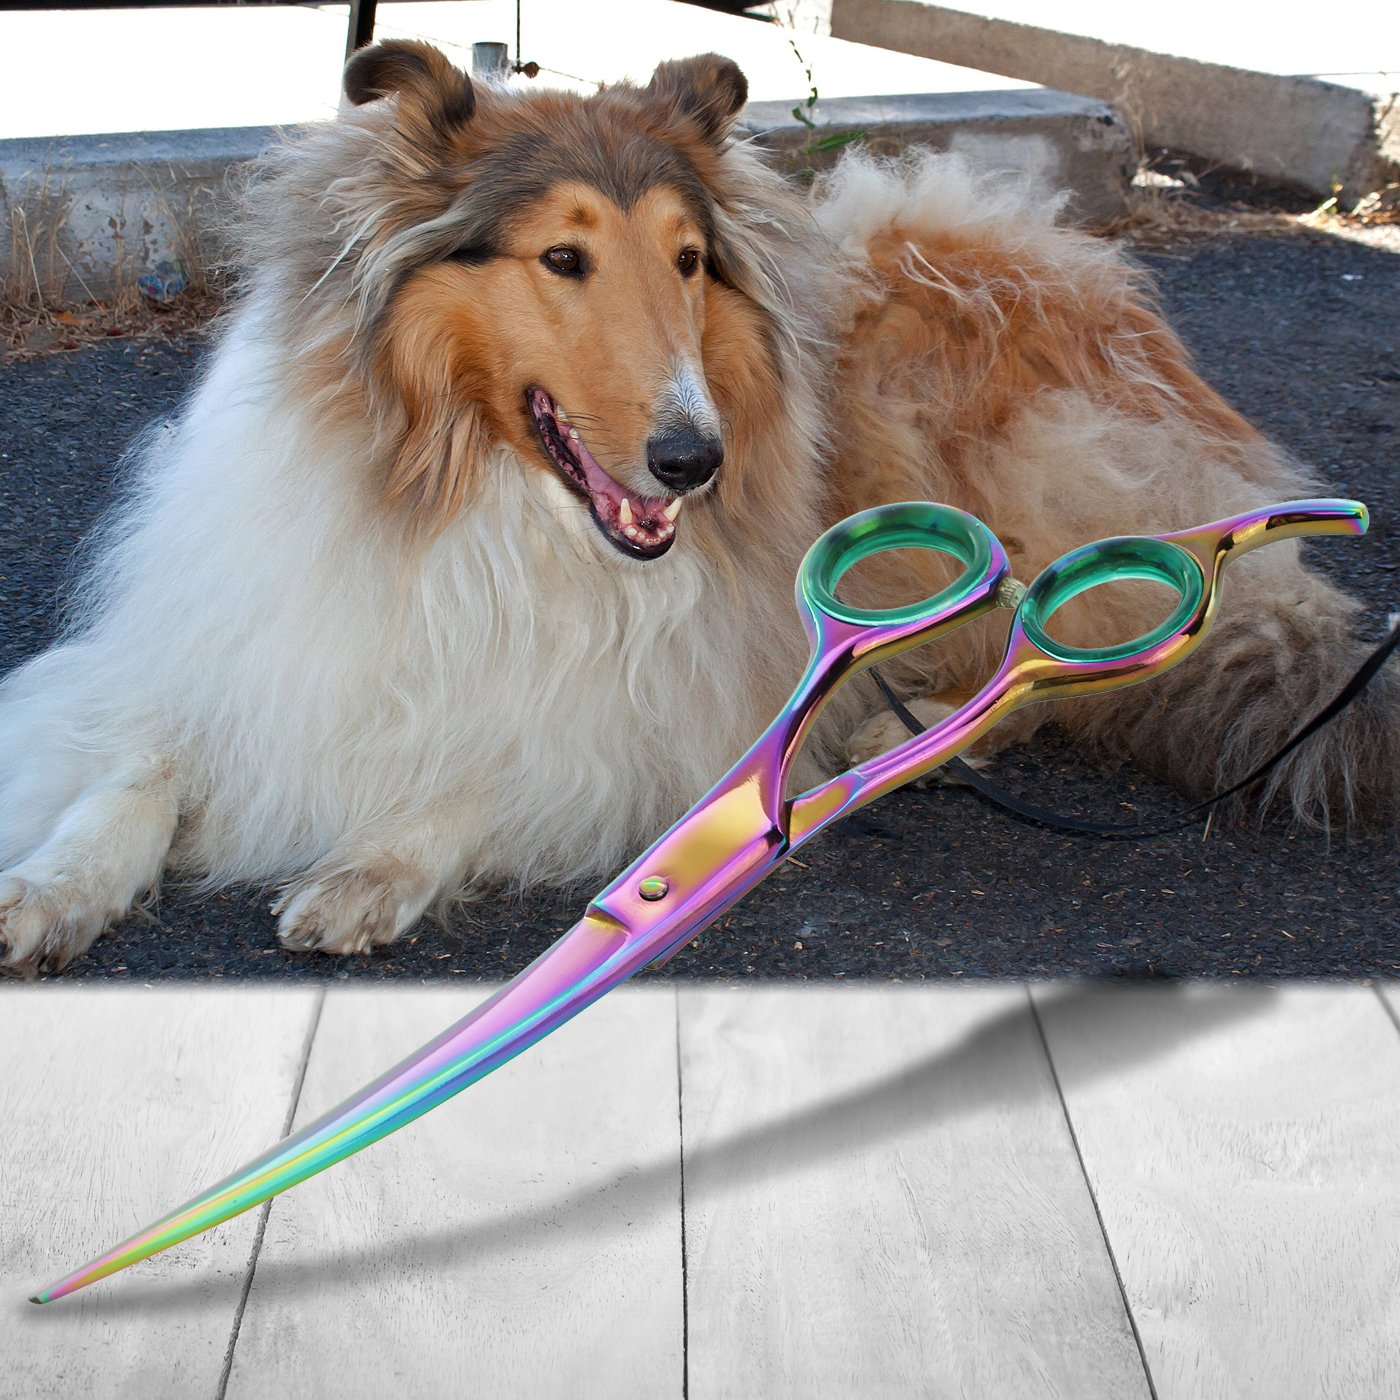 SHARF Professional 8.5'' Curved Rainbow Pet Grooming Scissors: Sharp 440c Japanese Clipping Shears for Dogs, Cats & Small Animals  Rainbow Series Hair Cutting/Clipping Scissors w/Easy Grip Handles by SHARF (Image #5)